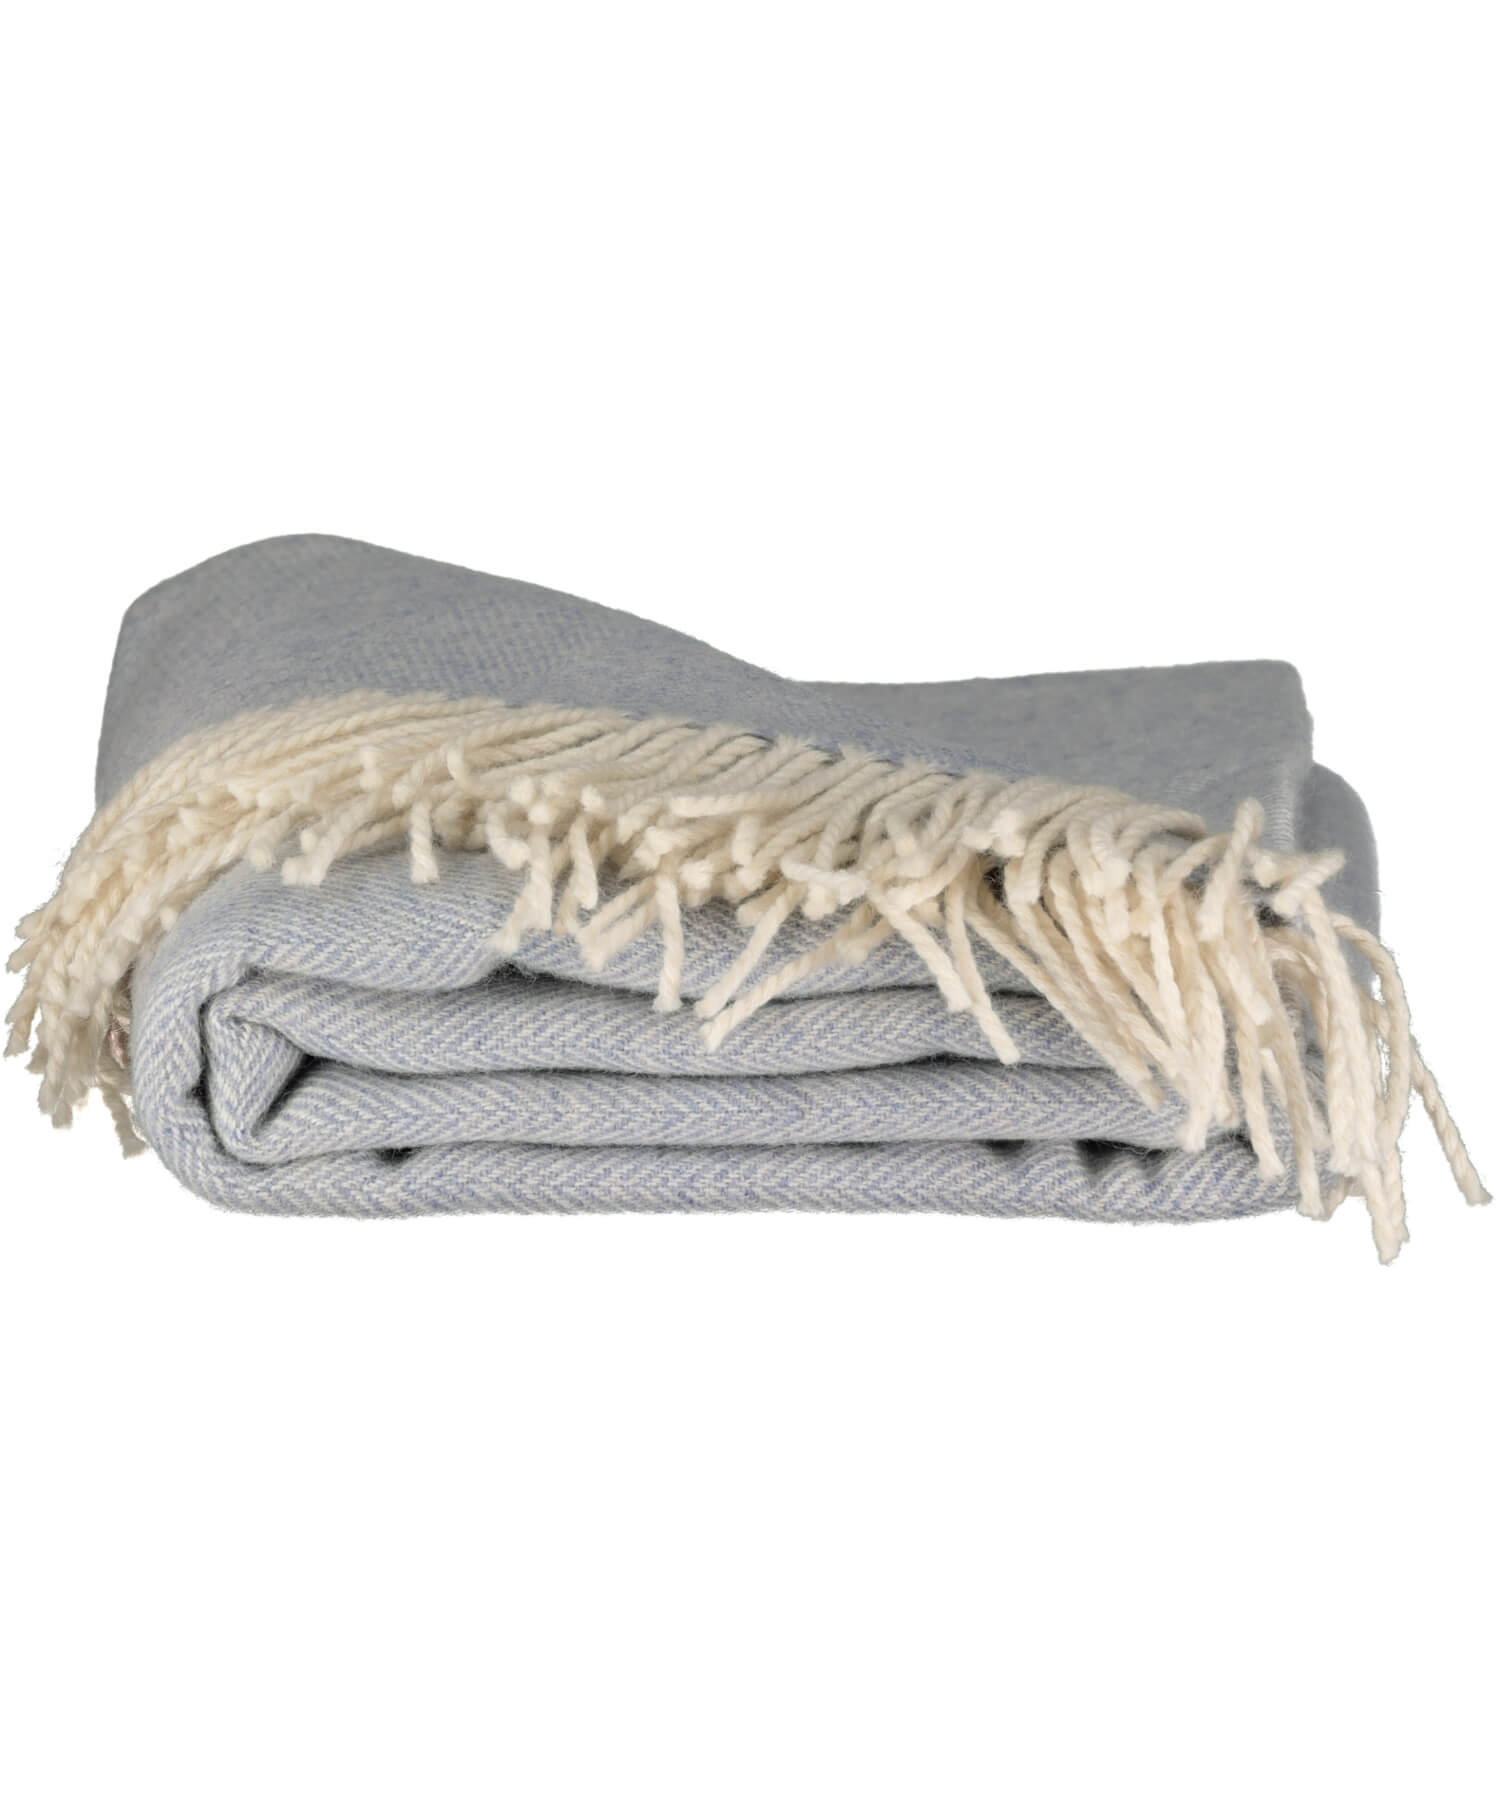 Supersoft Lambswool Throw - Smoke - [McNutts] - Throws & Cushions - Irish Gifts